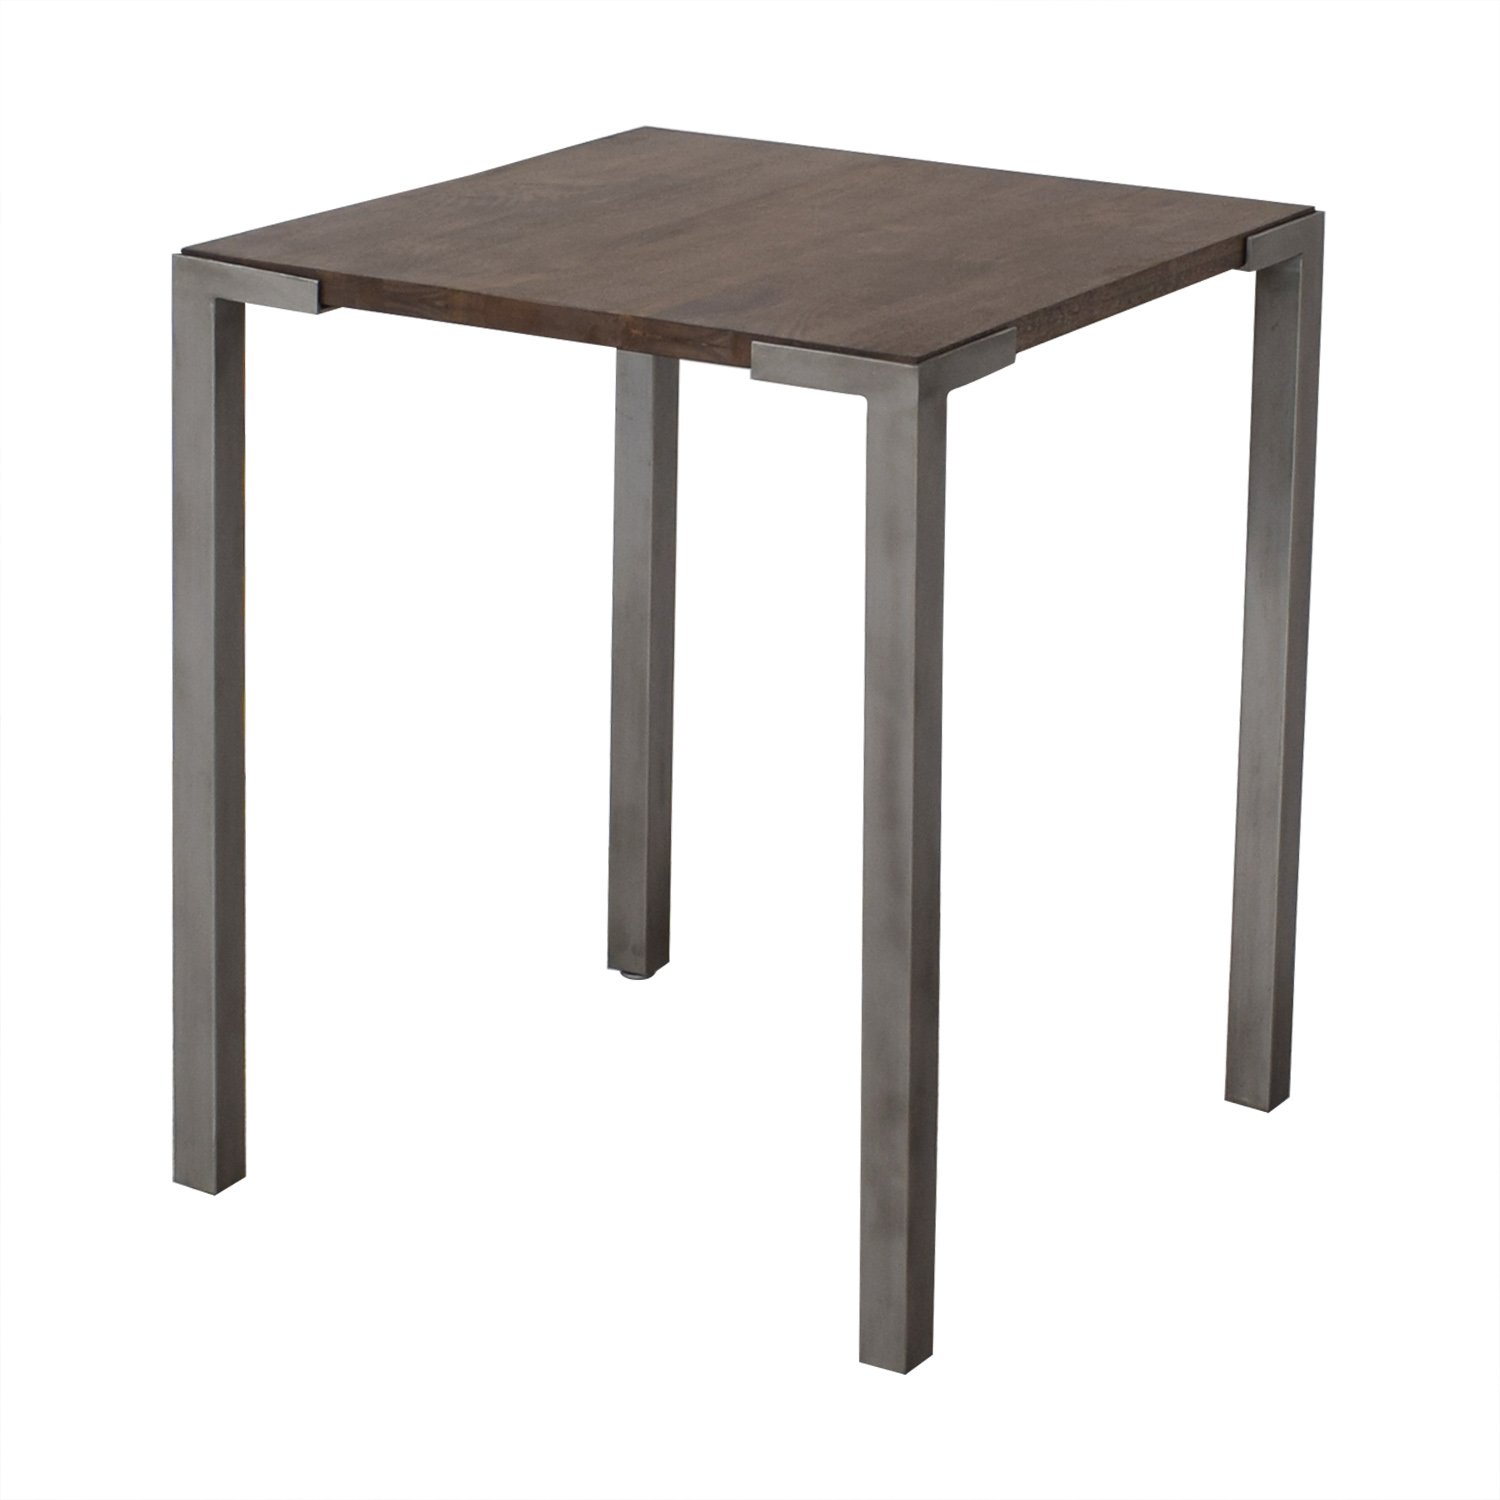 CB2 CB2 Stilt High Square Counter Table Accent Tables